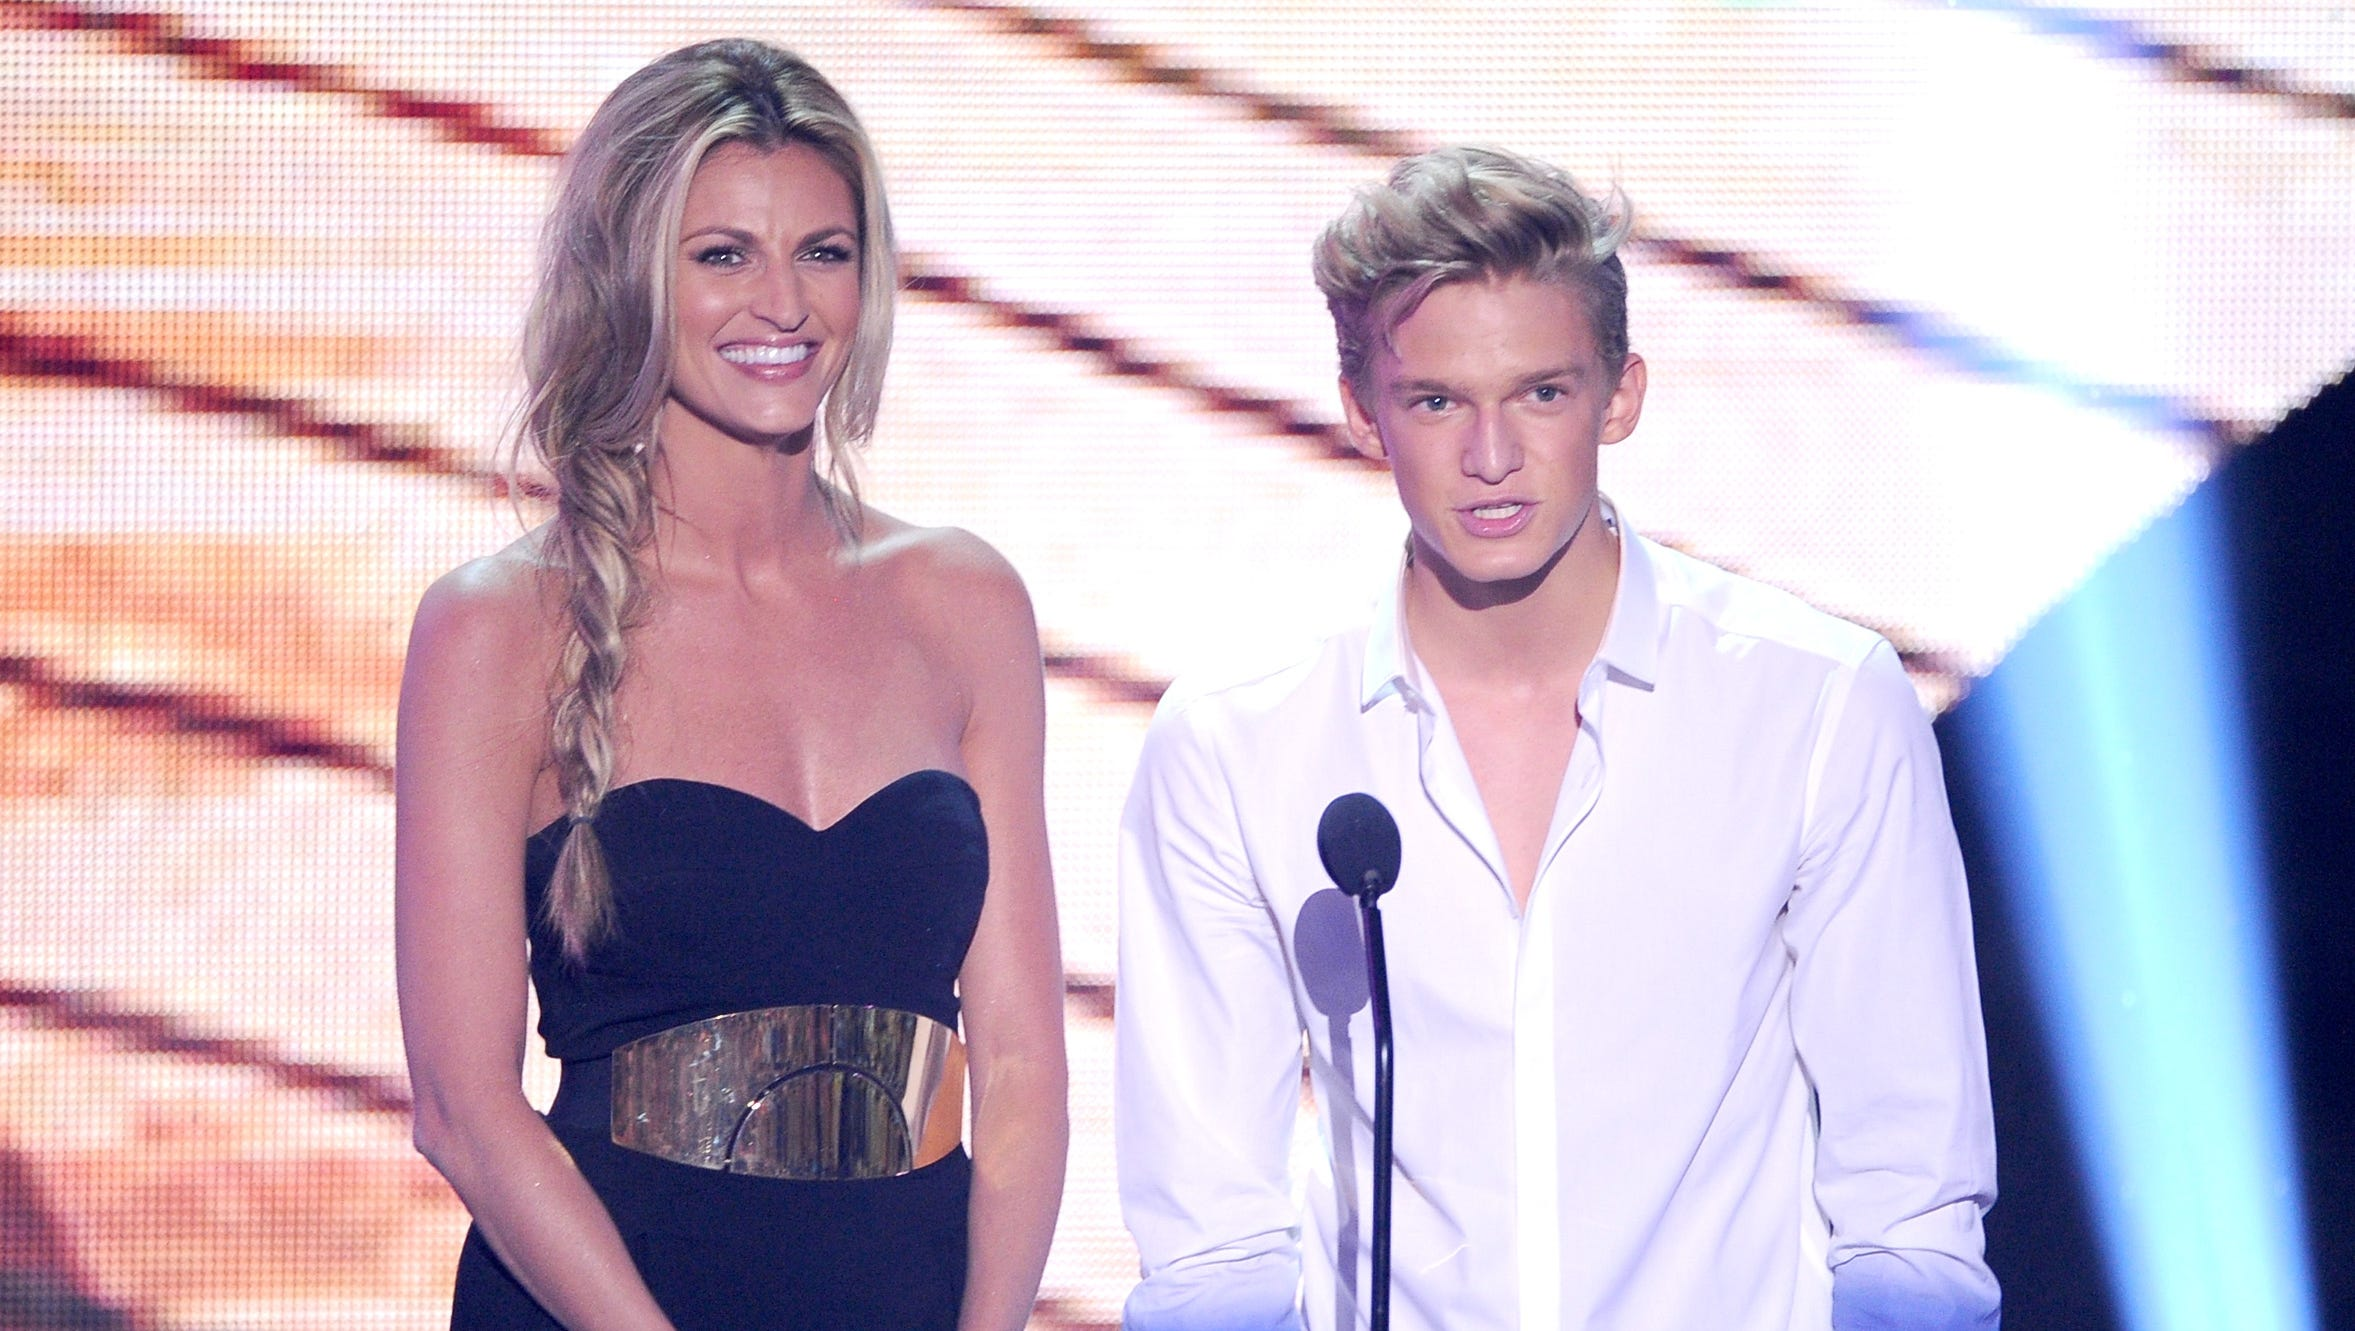 TV personality Erin Andrews and singer Cody Simpson share the stage.